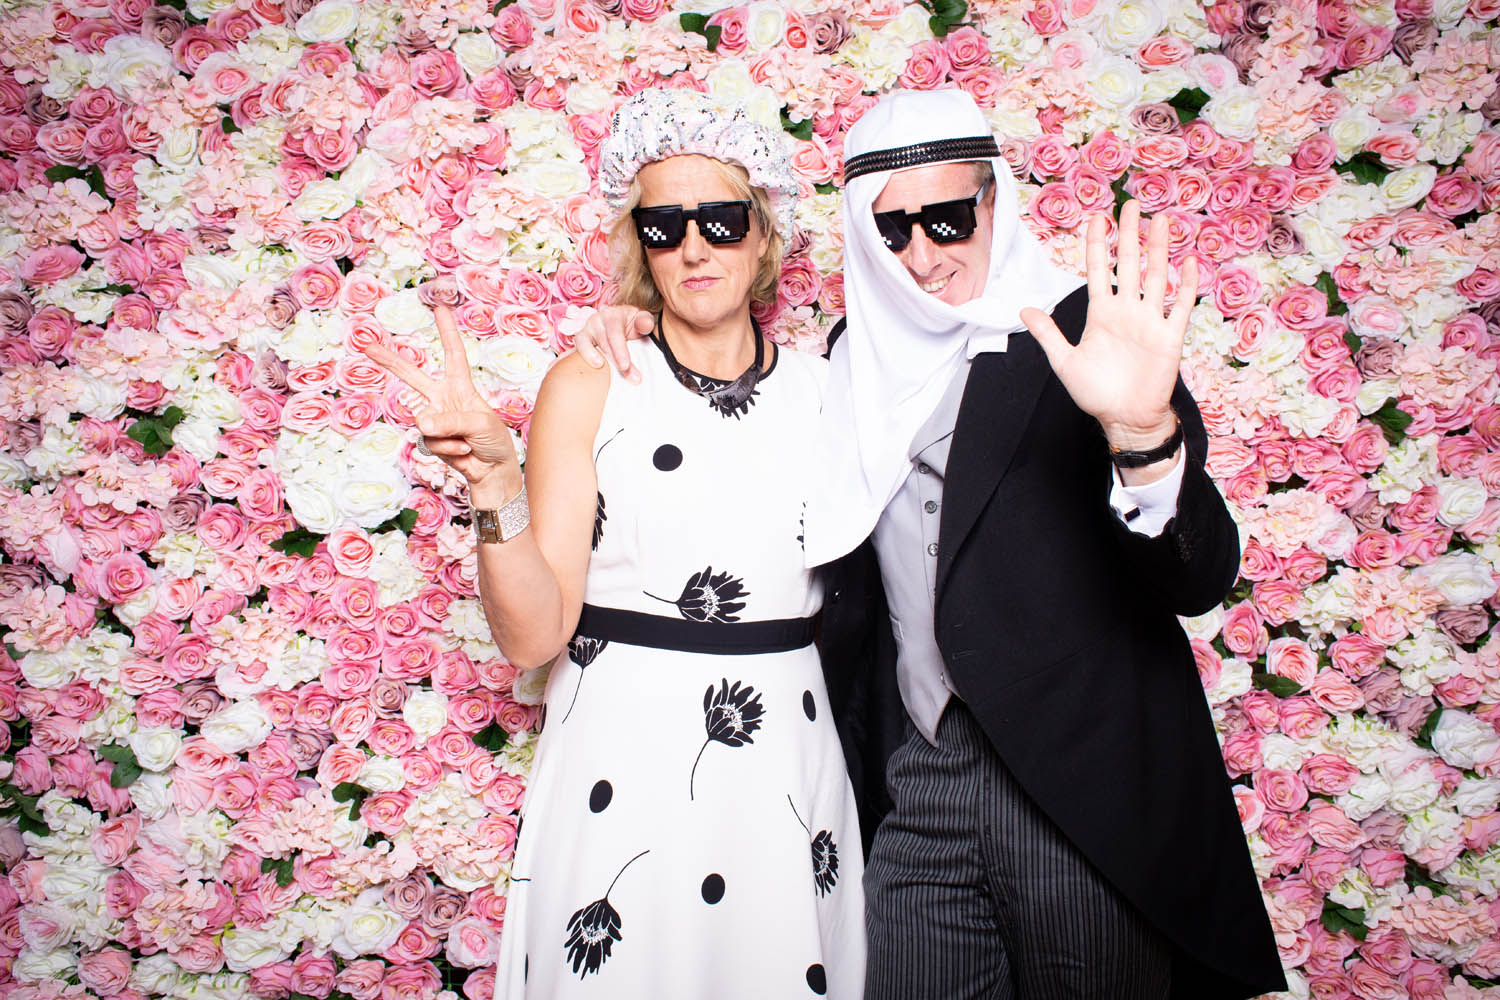 Flower Wall Photo Booth